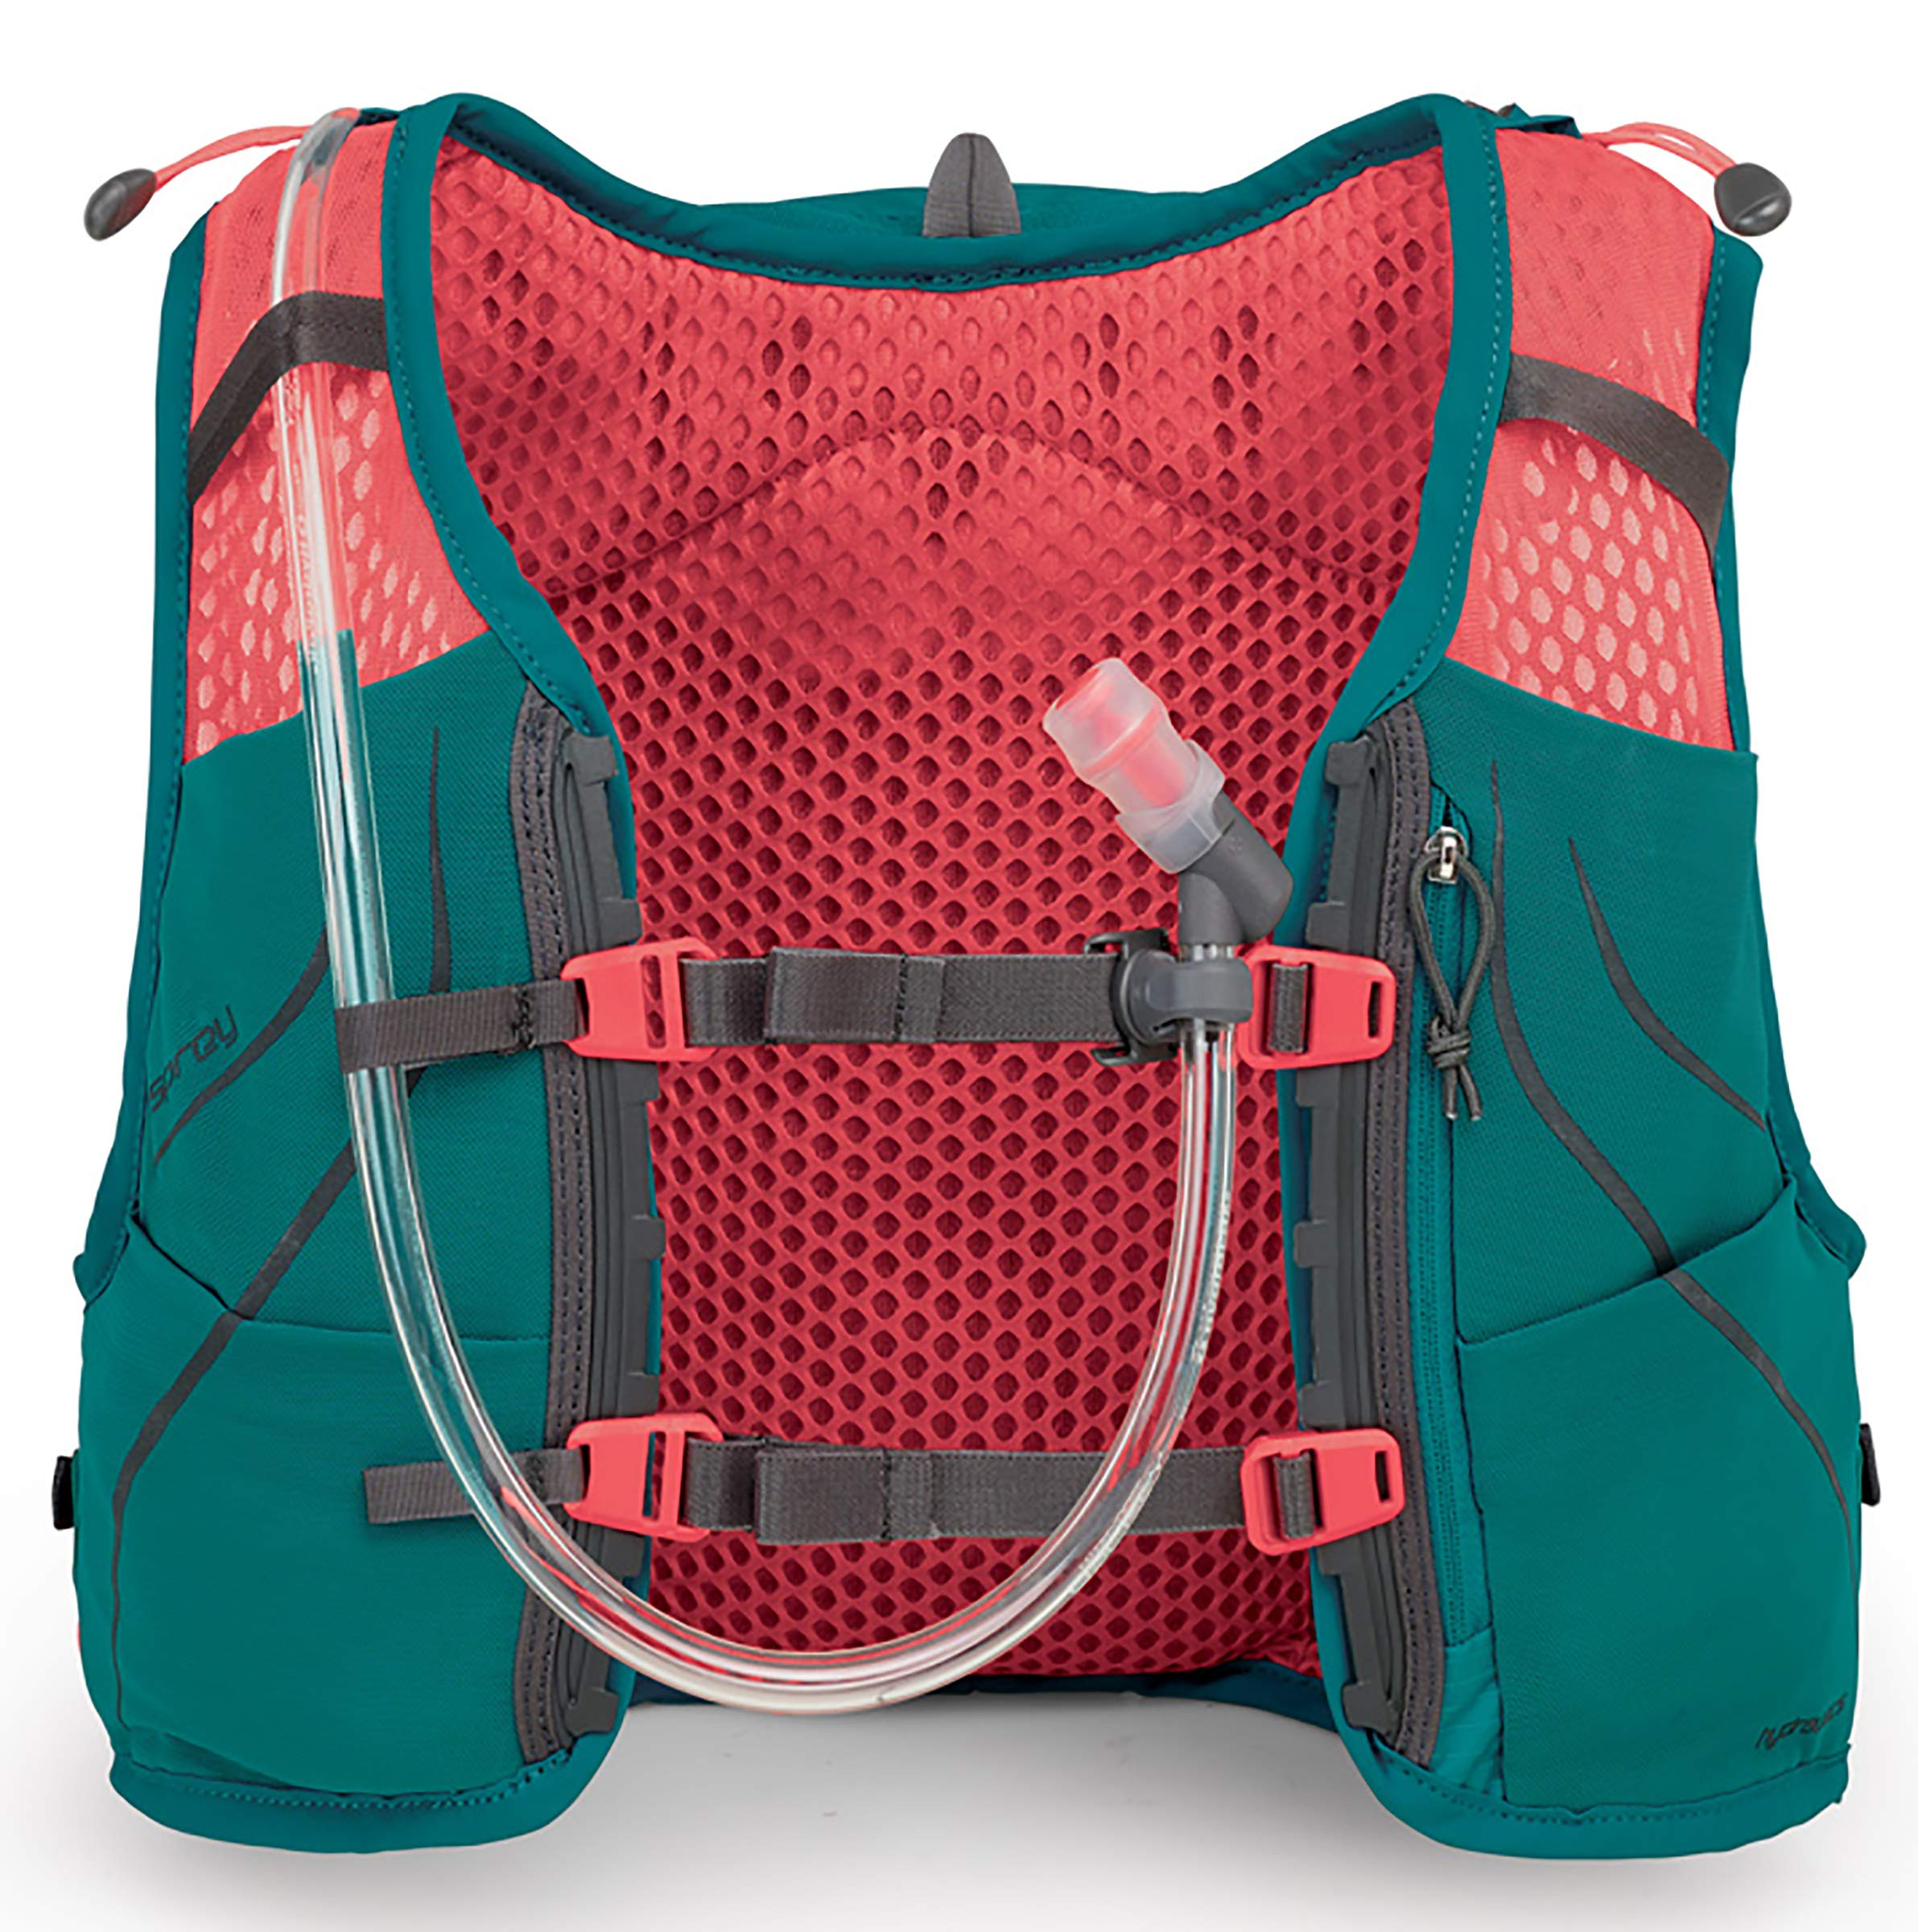 Osprey Packs Dyna 1.5L Women's Running Hydration Vest, Reef Teal, WXS/Small by Osprey (Image #3)